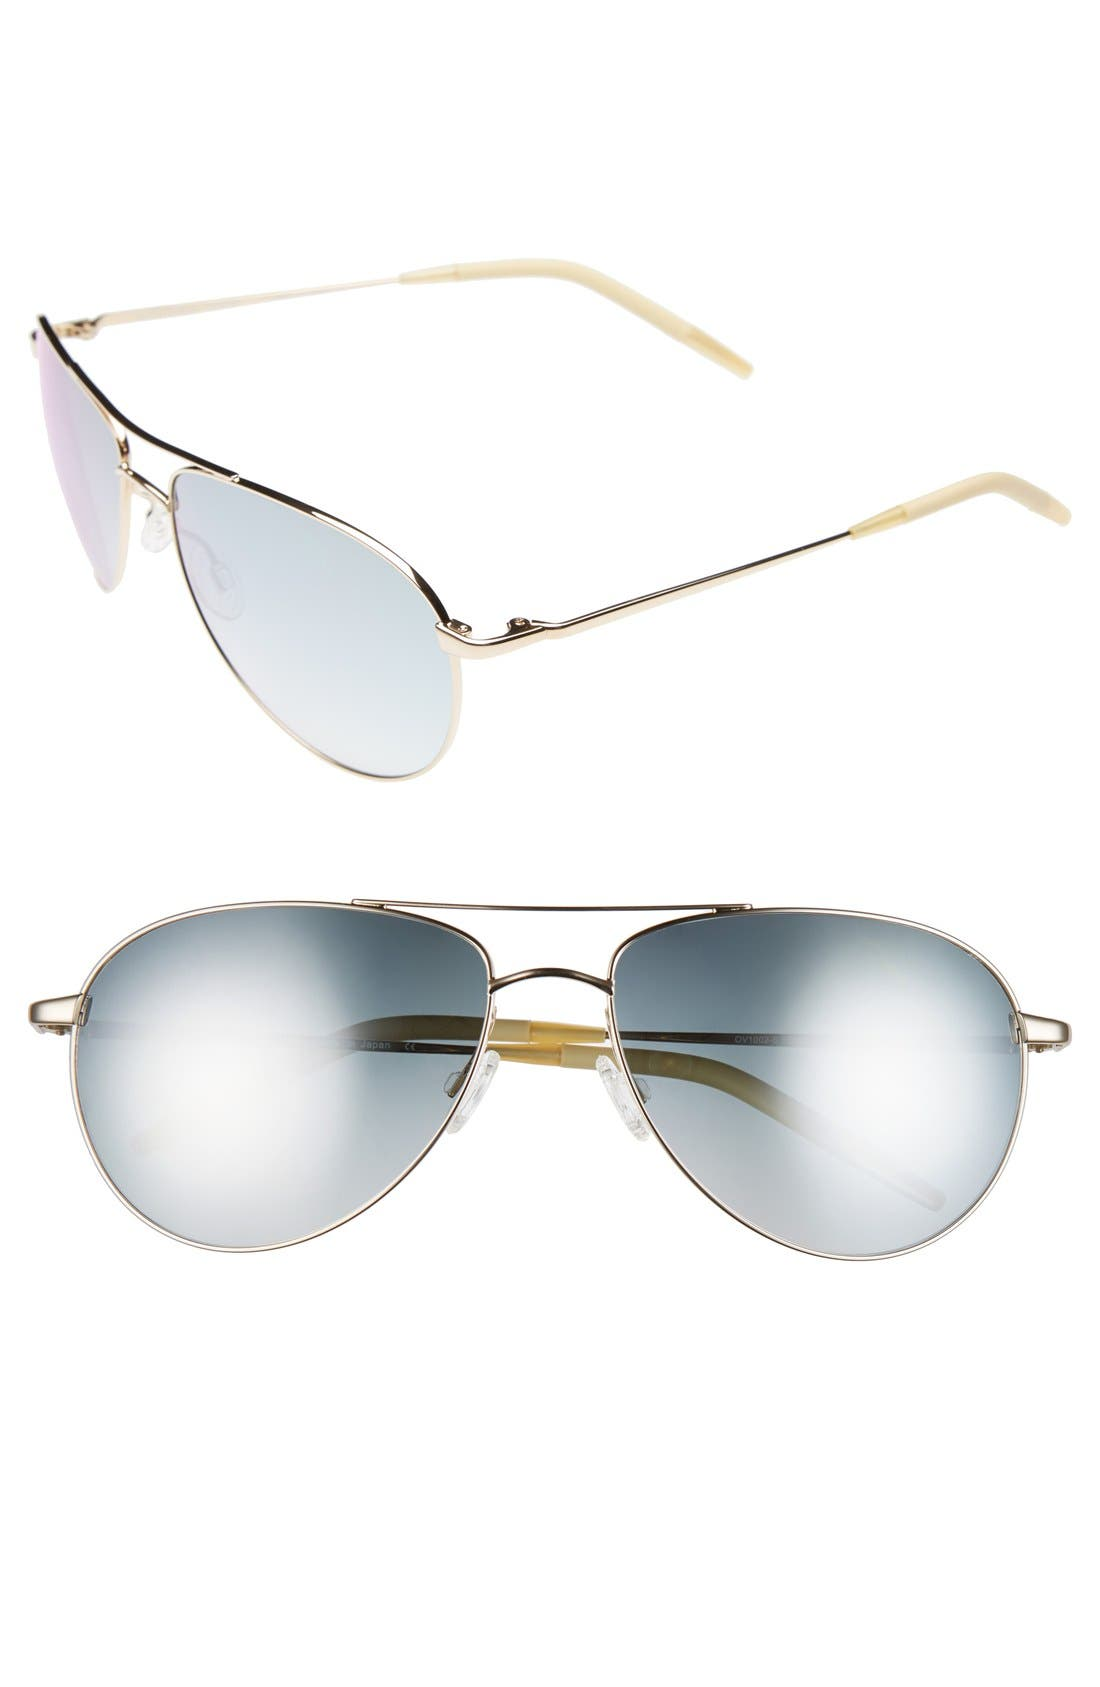 Alternate Image 1 Selected - Oliver Peoples 'Benedict' 59mm Aviator Sunglasses